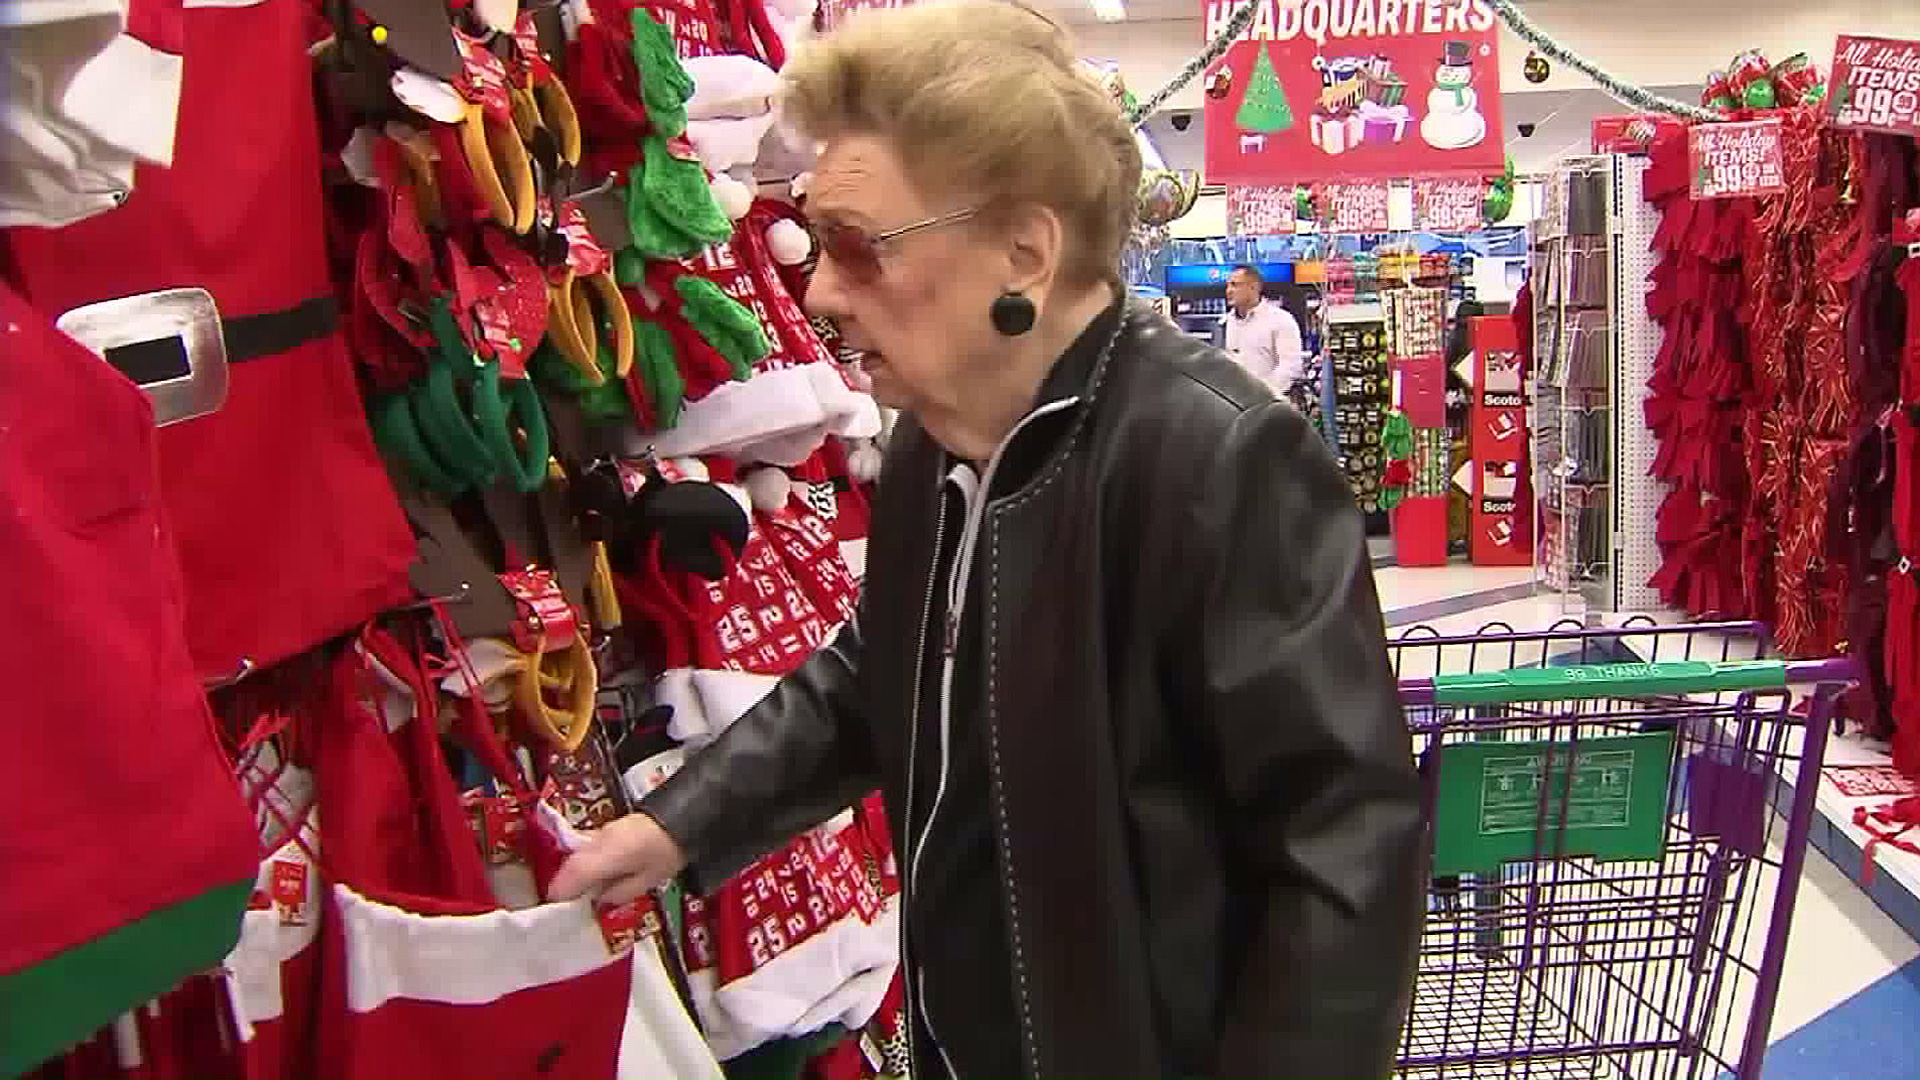 Donna Goldstein, 99, picks out Christmas items to donate during a shopping spree at a 99 Cents Only Store on her birthday on Dec. 10, 2015. (Credit: KTLA)